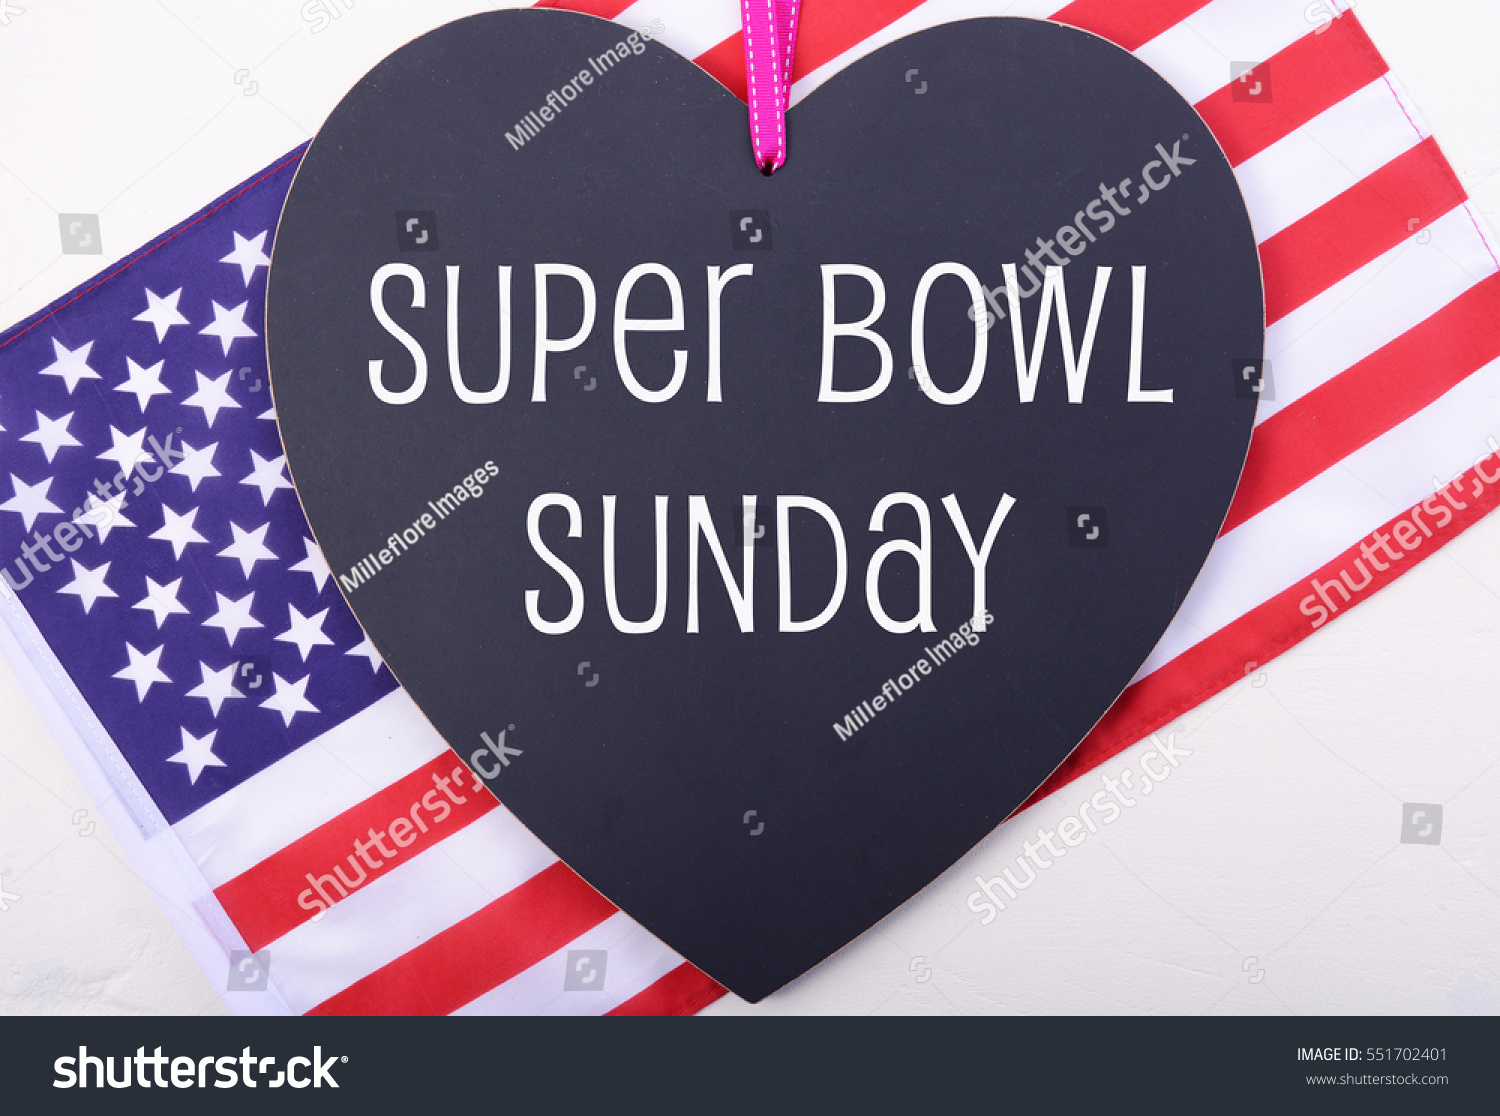 Super Bowl Sunday Playoffs Greeting Message Stock Photo Edit Now